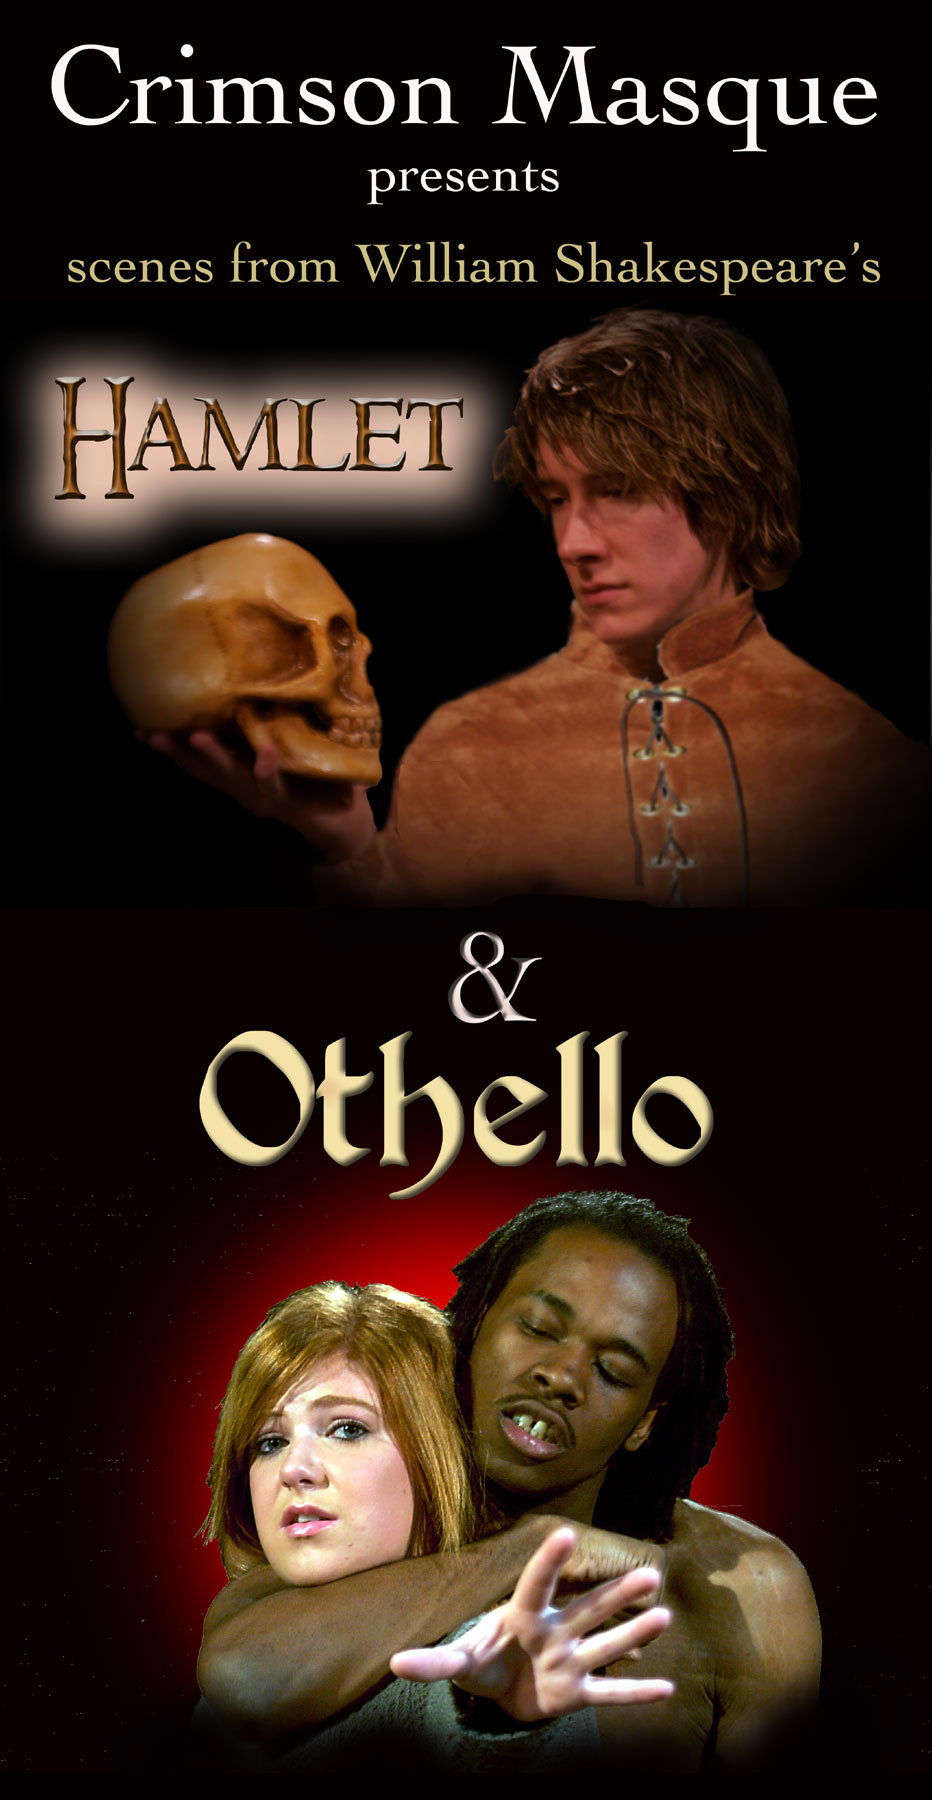 the revelation of the characters of atonement in hamlet a play by william shakespeare Family relationships in shakespeare's hamlet in the tragedy of hamlet by william shakespeare, the  relationships between parents and their offspring play a crucial role in the development of the plot.